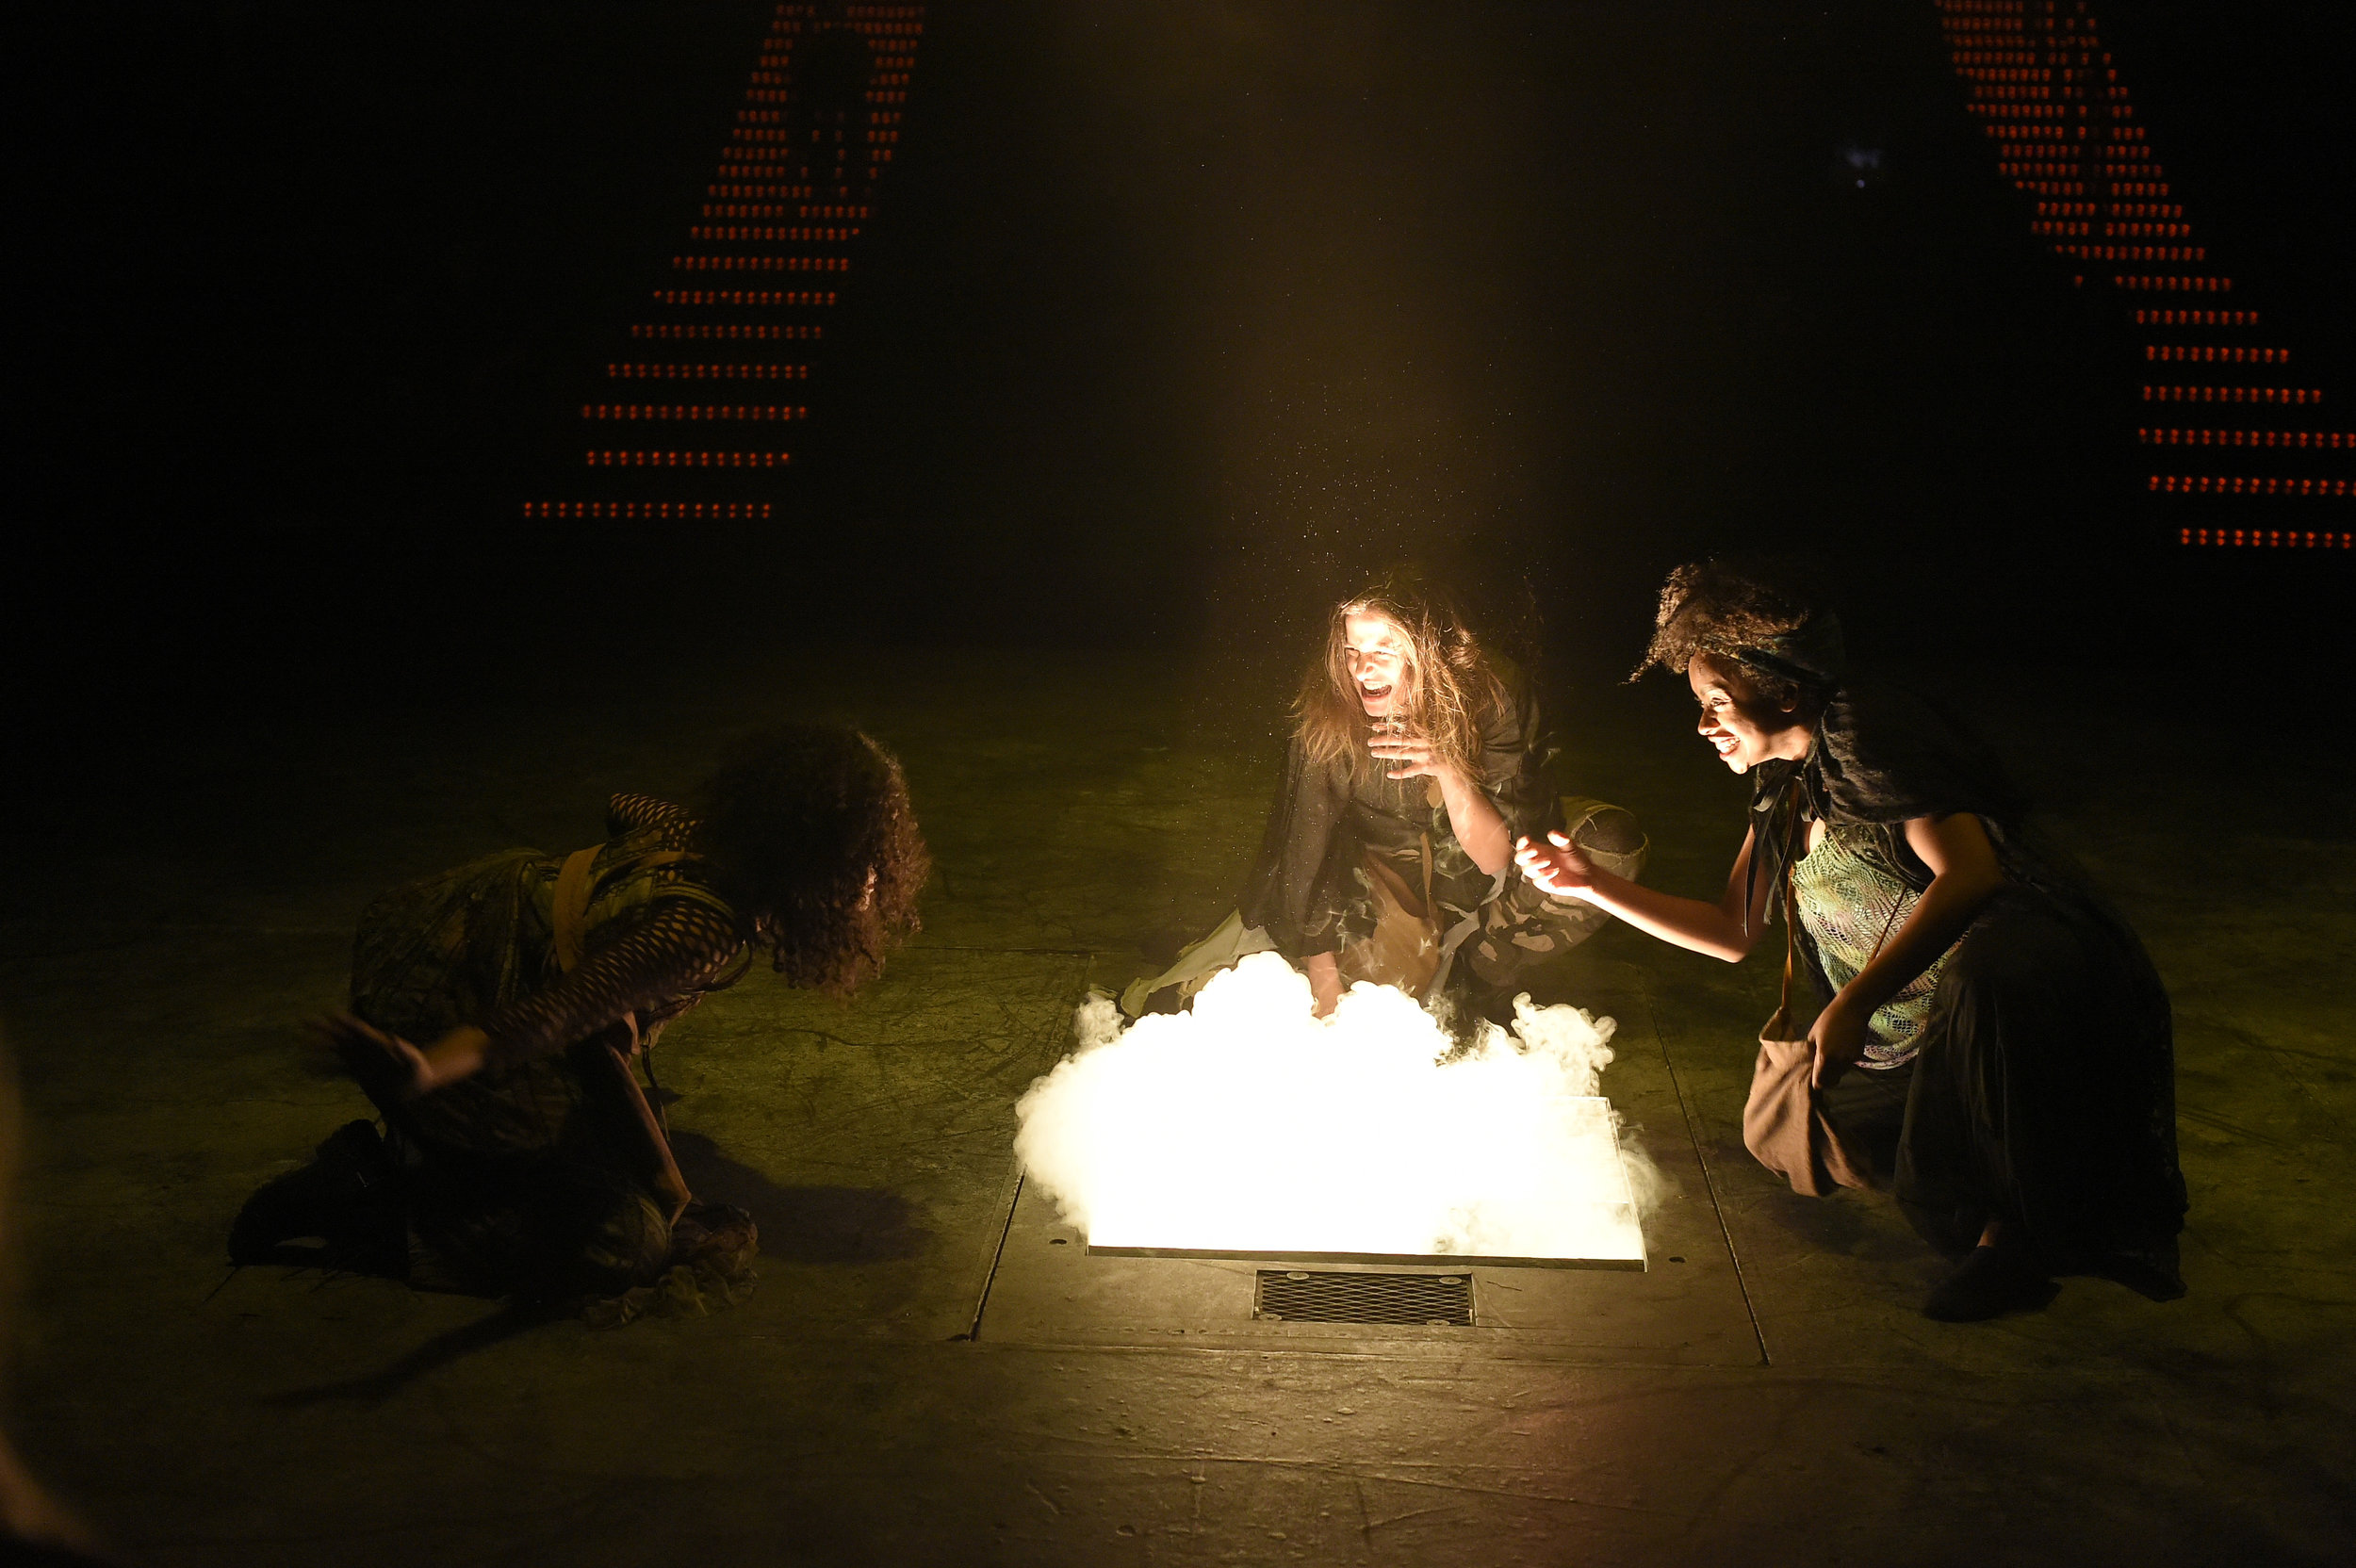 February 2018: I appeared as Witch 3 in Macbeth at the USC Bing Theatre -